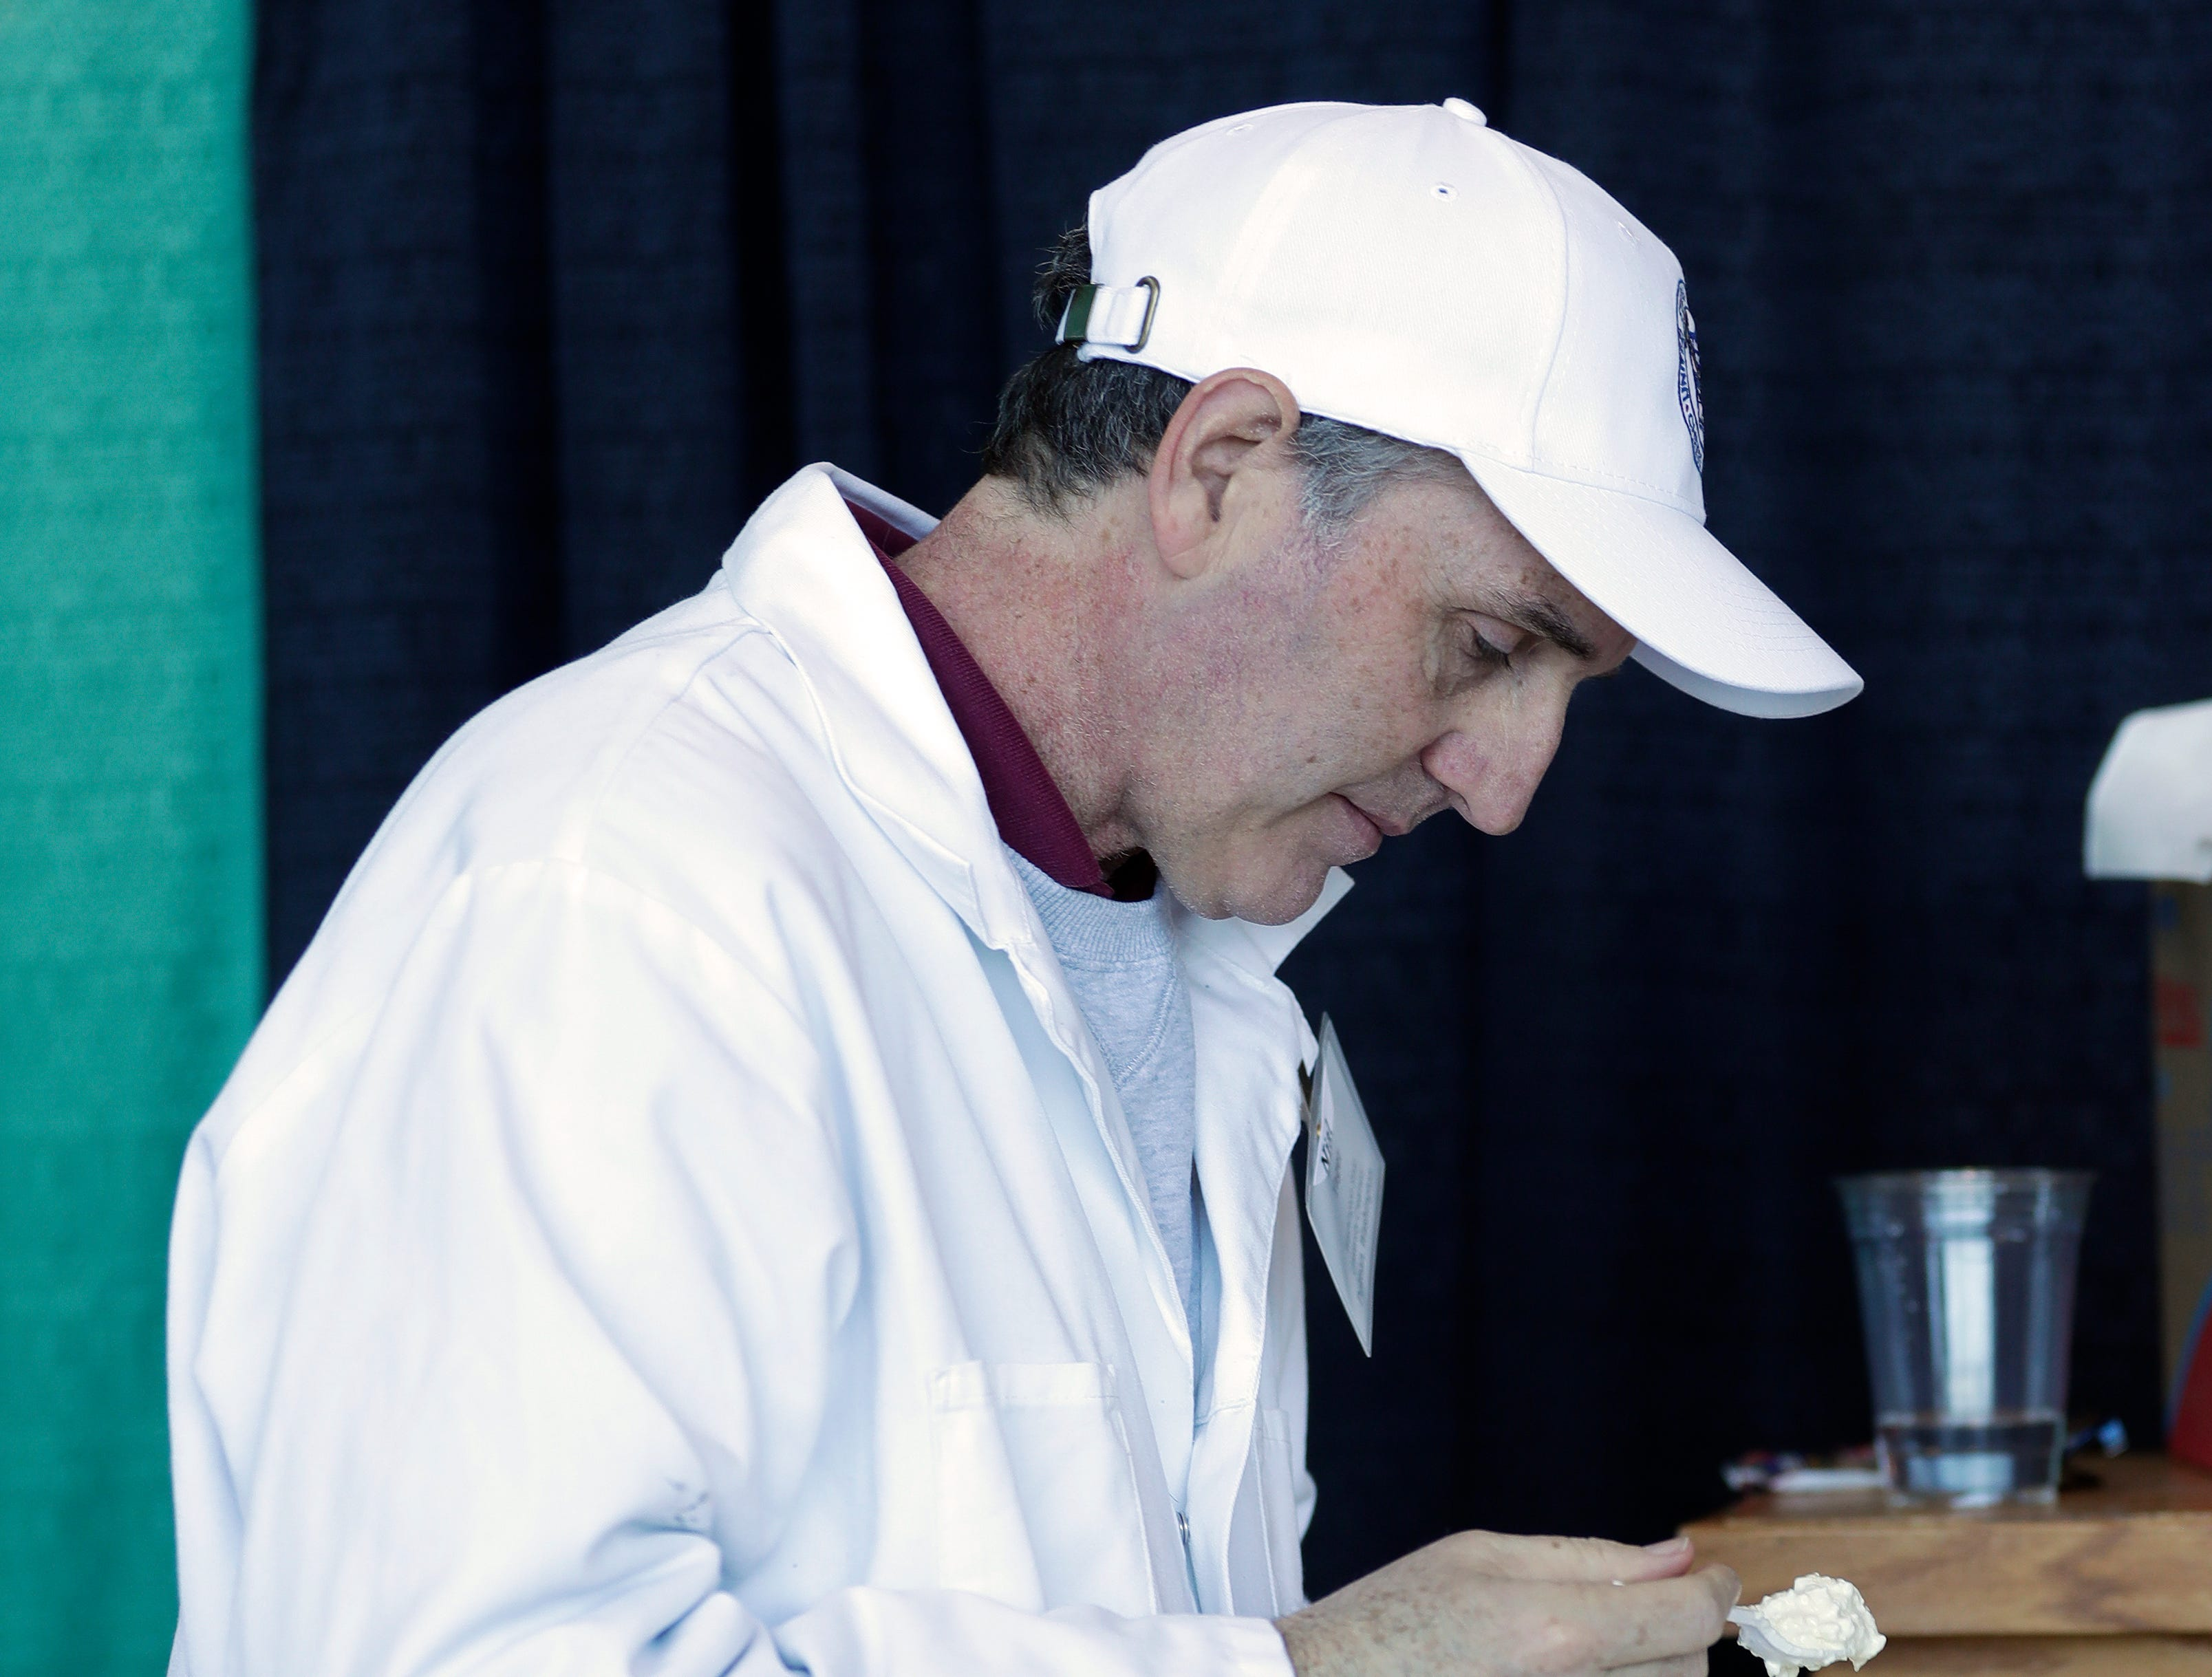 Nial Yager of Washington State University judges cottage cheese during the U.S. Championship Cheese Contest on March 5, 2019 at Lambeau Field in Green Bay, Wis. Sarah Kloepping/USA TODAY NETWORK-Wisconsin